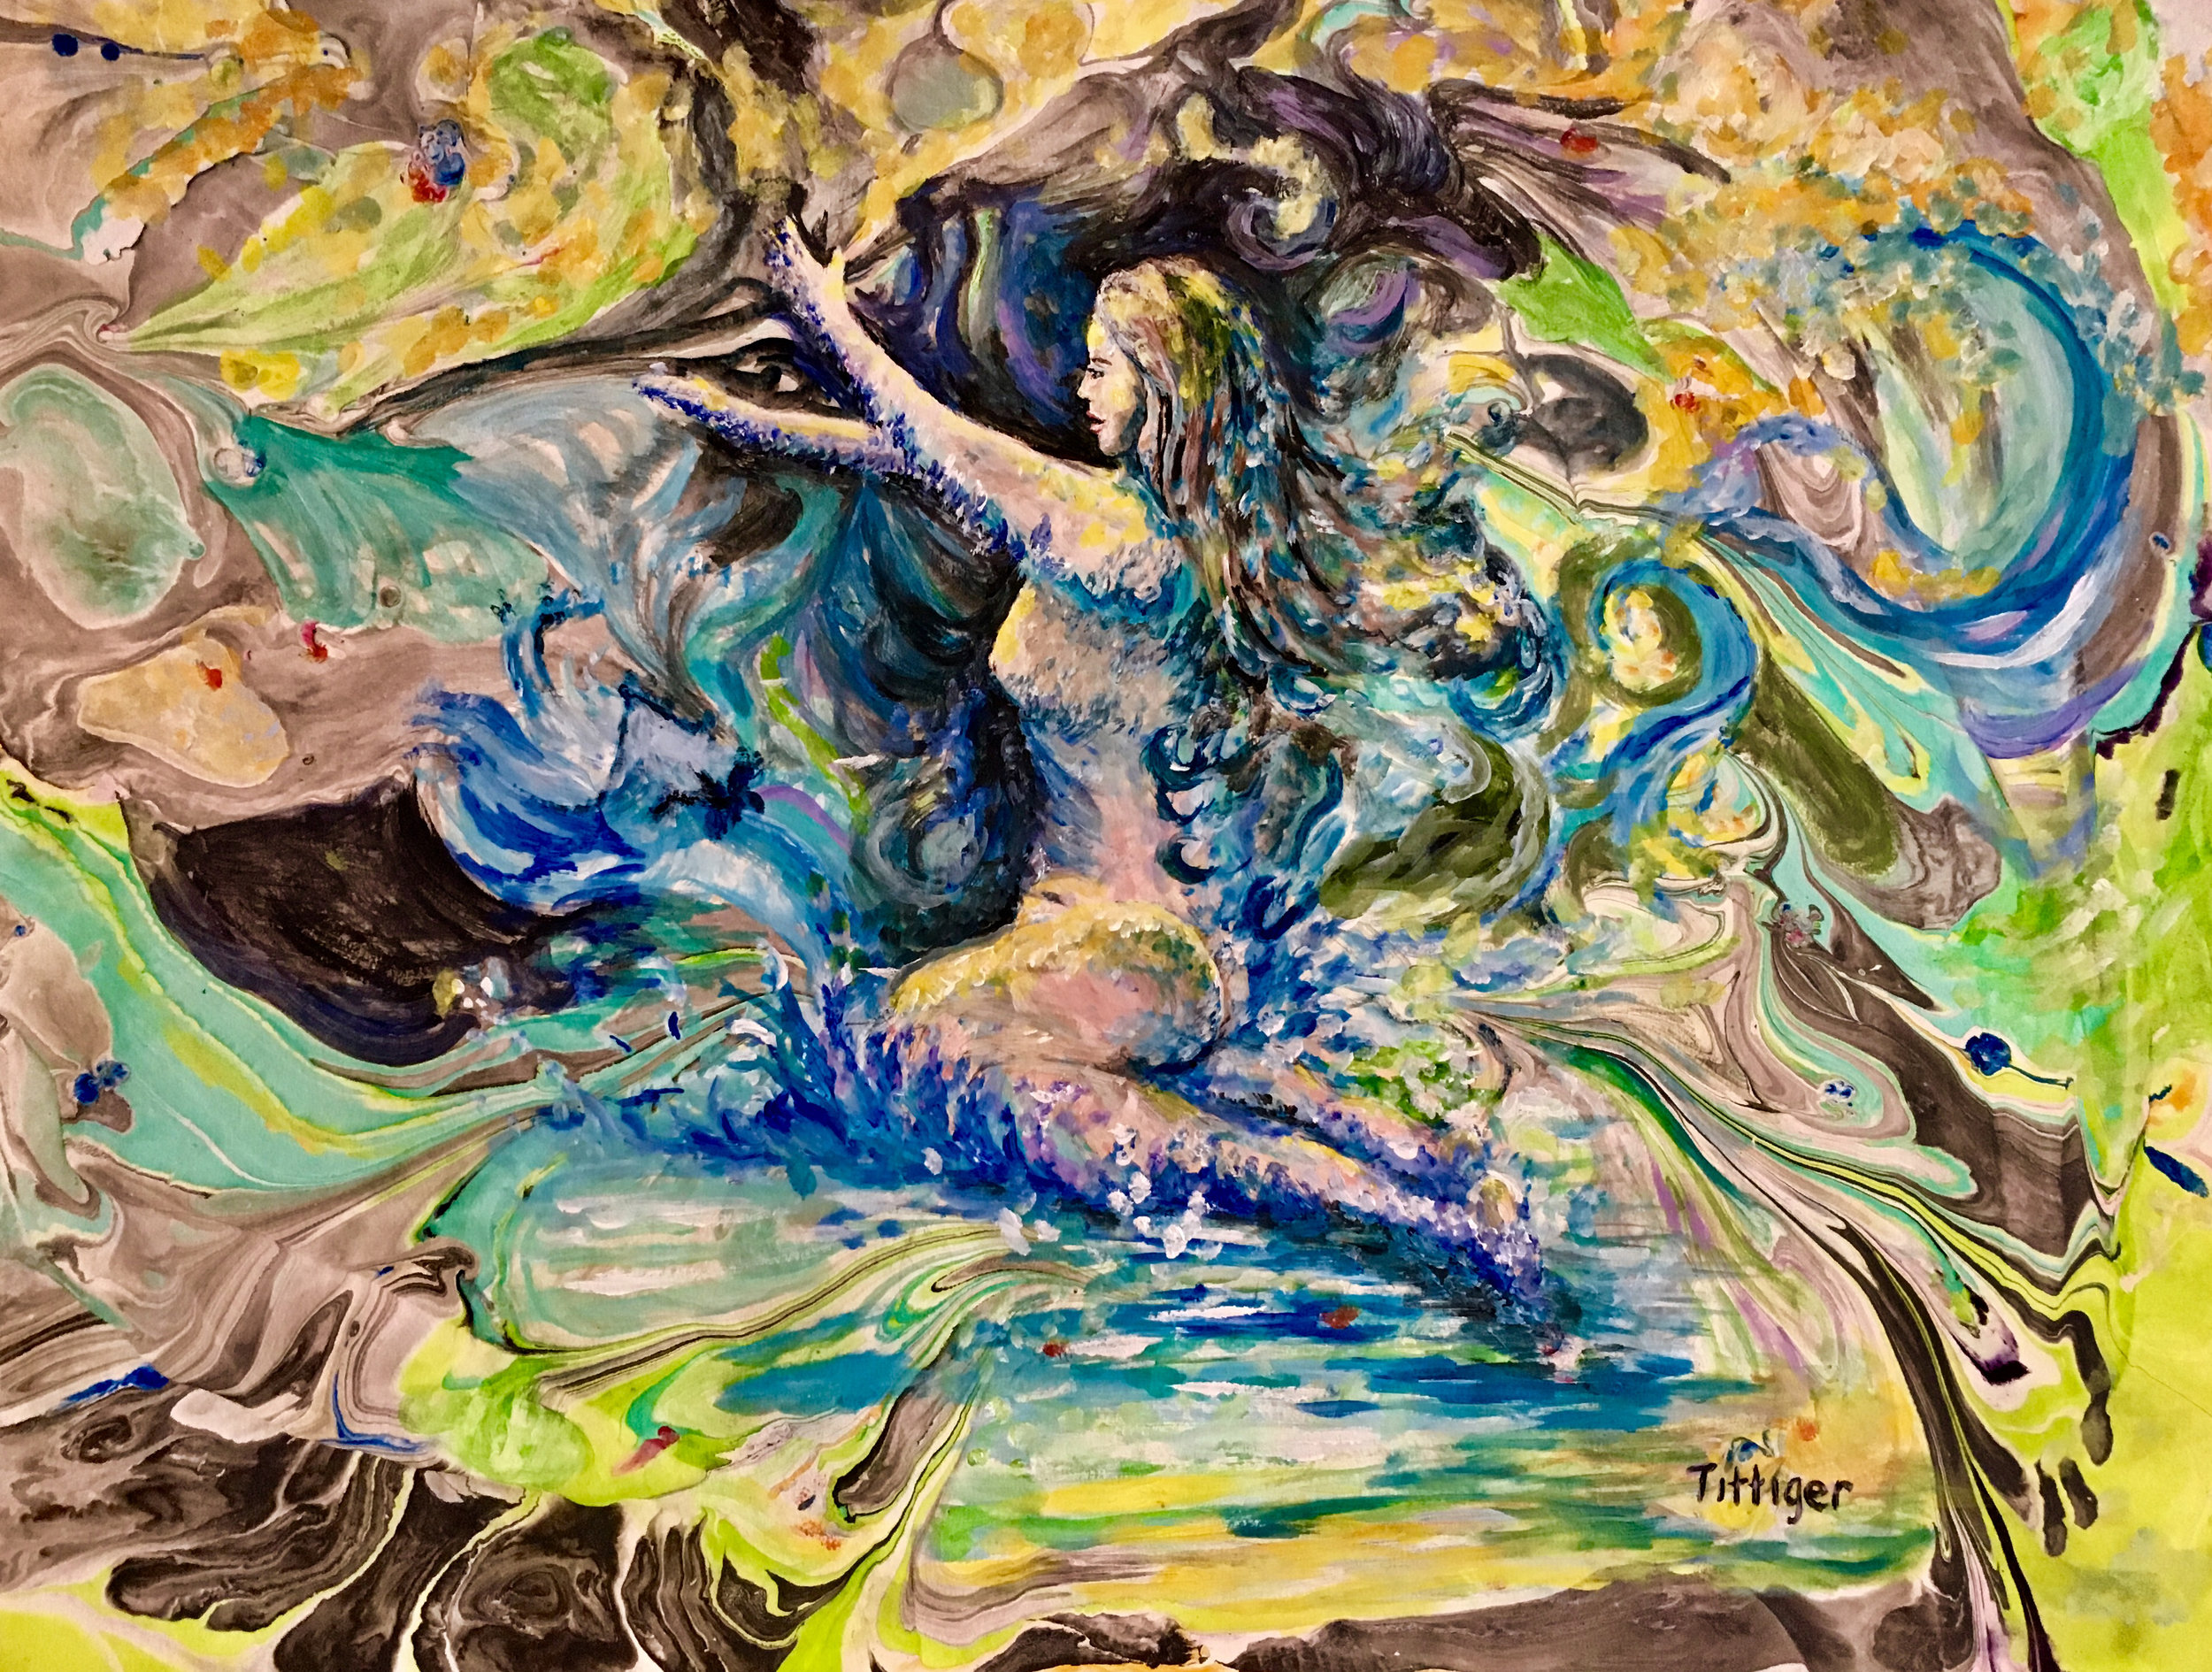 ESSENCE OF LIFE    This is an 18 x 24 marbling with a painting of a woman emerging from the water.